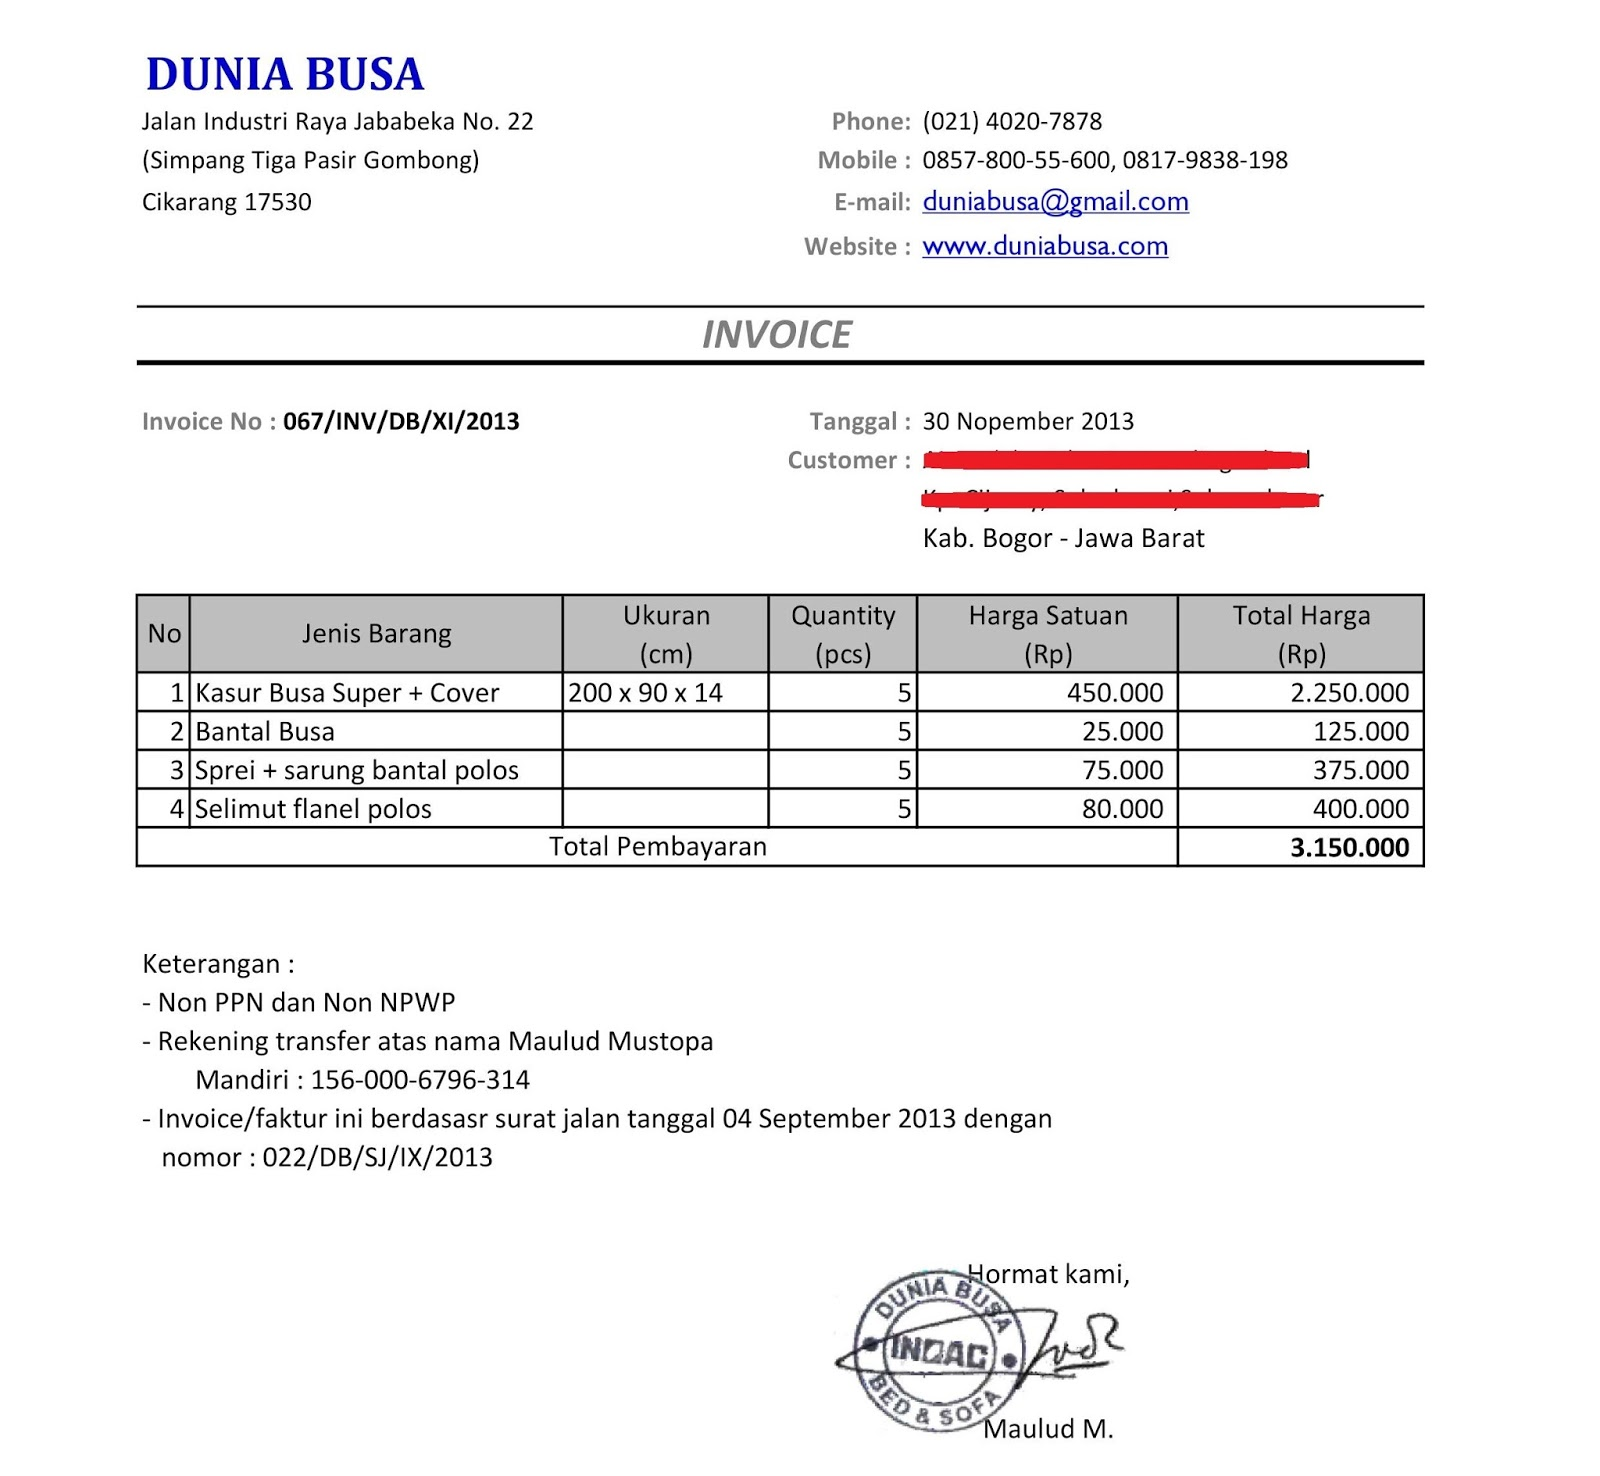 Centralasianshepherdus  Unusual Free Invoice Online  Create Invoice Online  Invoice Template  With Great Contoh Format Invoice Atau Surat Tagihan  Brankas Arsip  Free Invoice Online With Delectable Dealer Invoice By Vin Also How To Delete An Invoice In Quickbooks In Addition Paypal Invoice And Invoice Template Google Docs As Well As Free Invoice Generator Additionally Define Invoice From Sklepco With Centralasianshepherdus  Great Free Invoice Online  Create Invoice Online  Invoice Template  With Delectable Contoh Format Invoice Atau Surat Tagihan  Brankas Arsip  Free Invoice Online And Unusual Dealer Invoice By Vin Also How To Delete An Invoice In Quickbooks In Addition Paypal Invoice From Sklepco